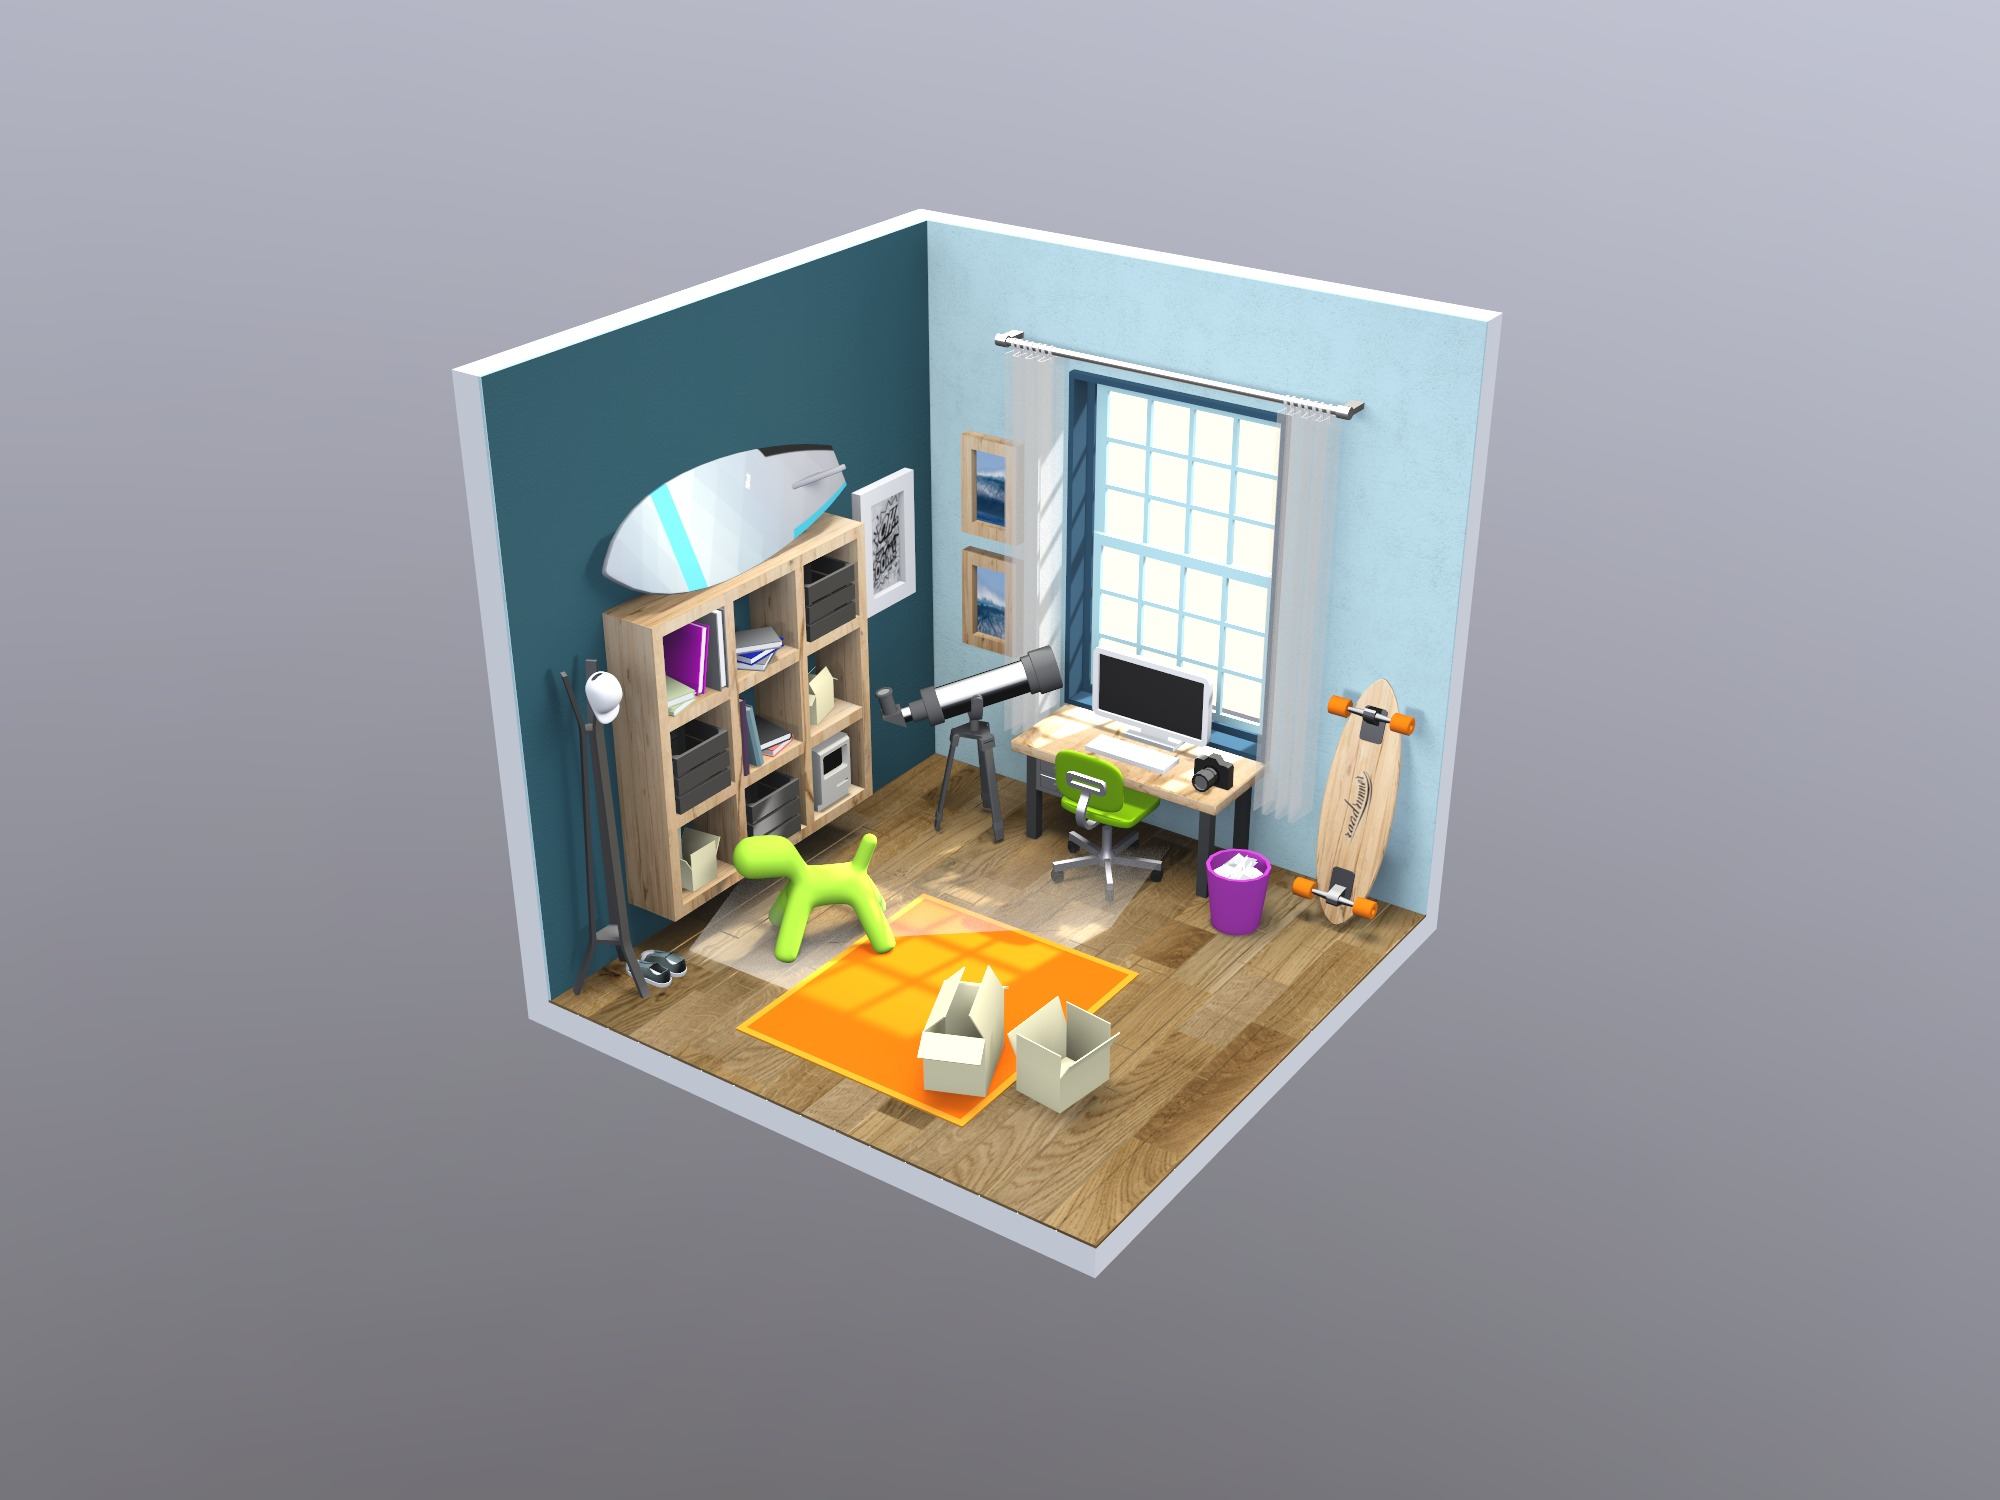 Isometric student's room  - 3D design by Vectary templates on Jun 4, 2018